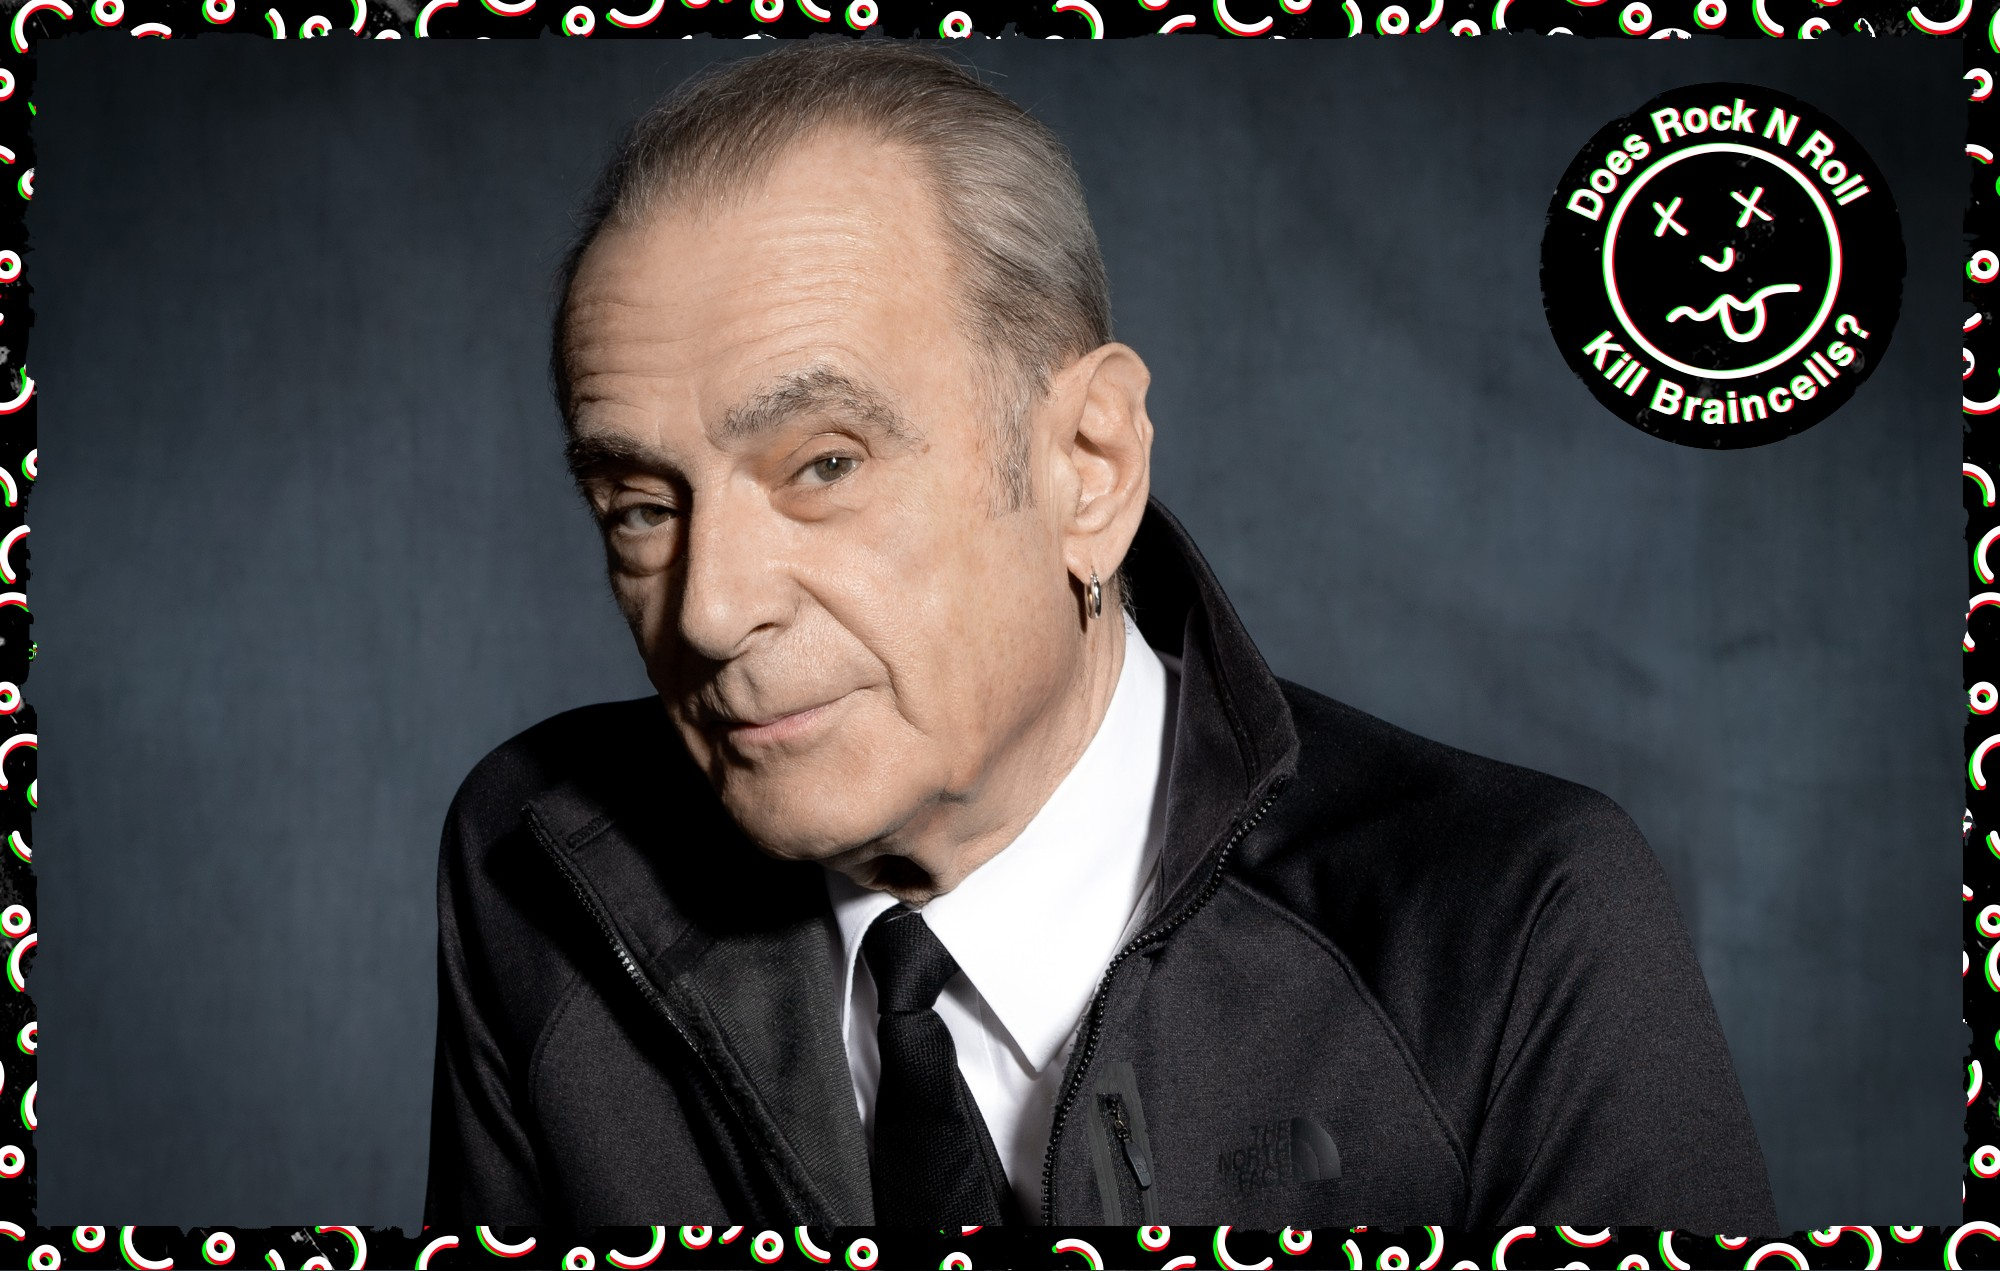 Does Rock 'N' Roll Kill Braincells?! - Francis Rossi, NME interview